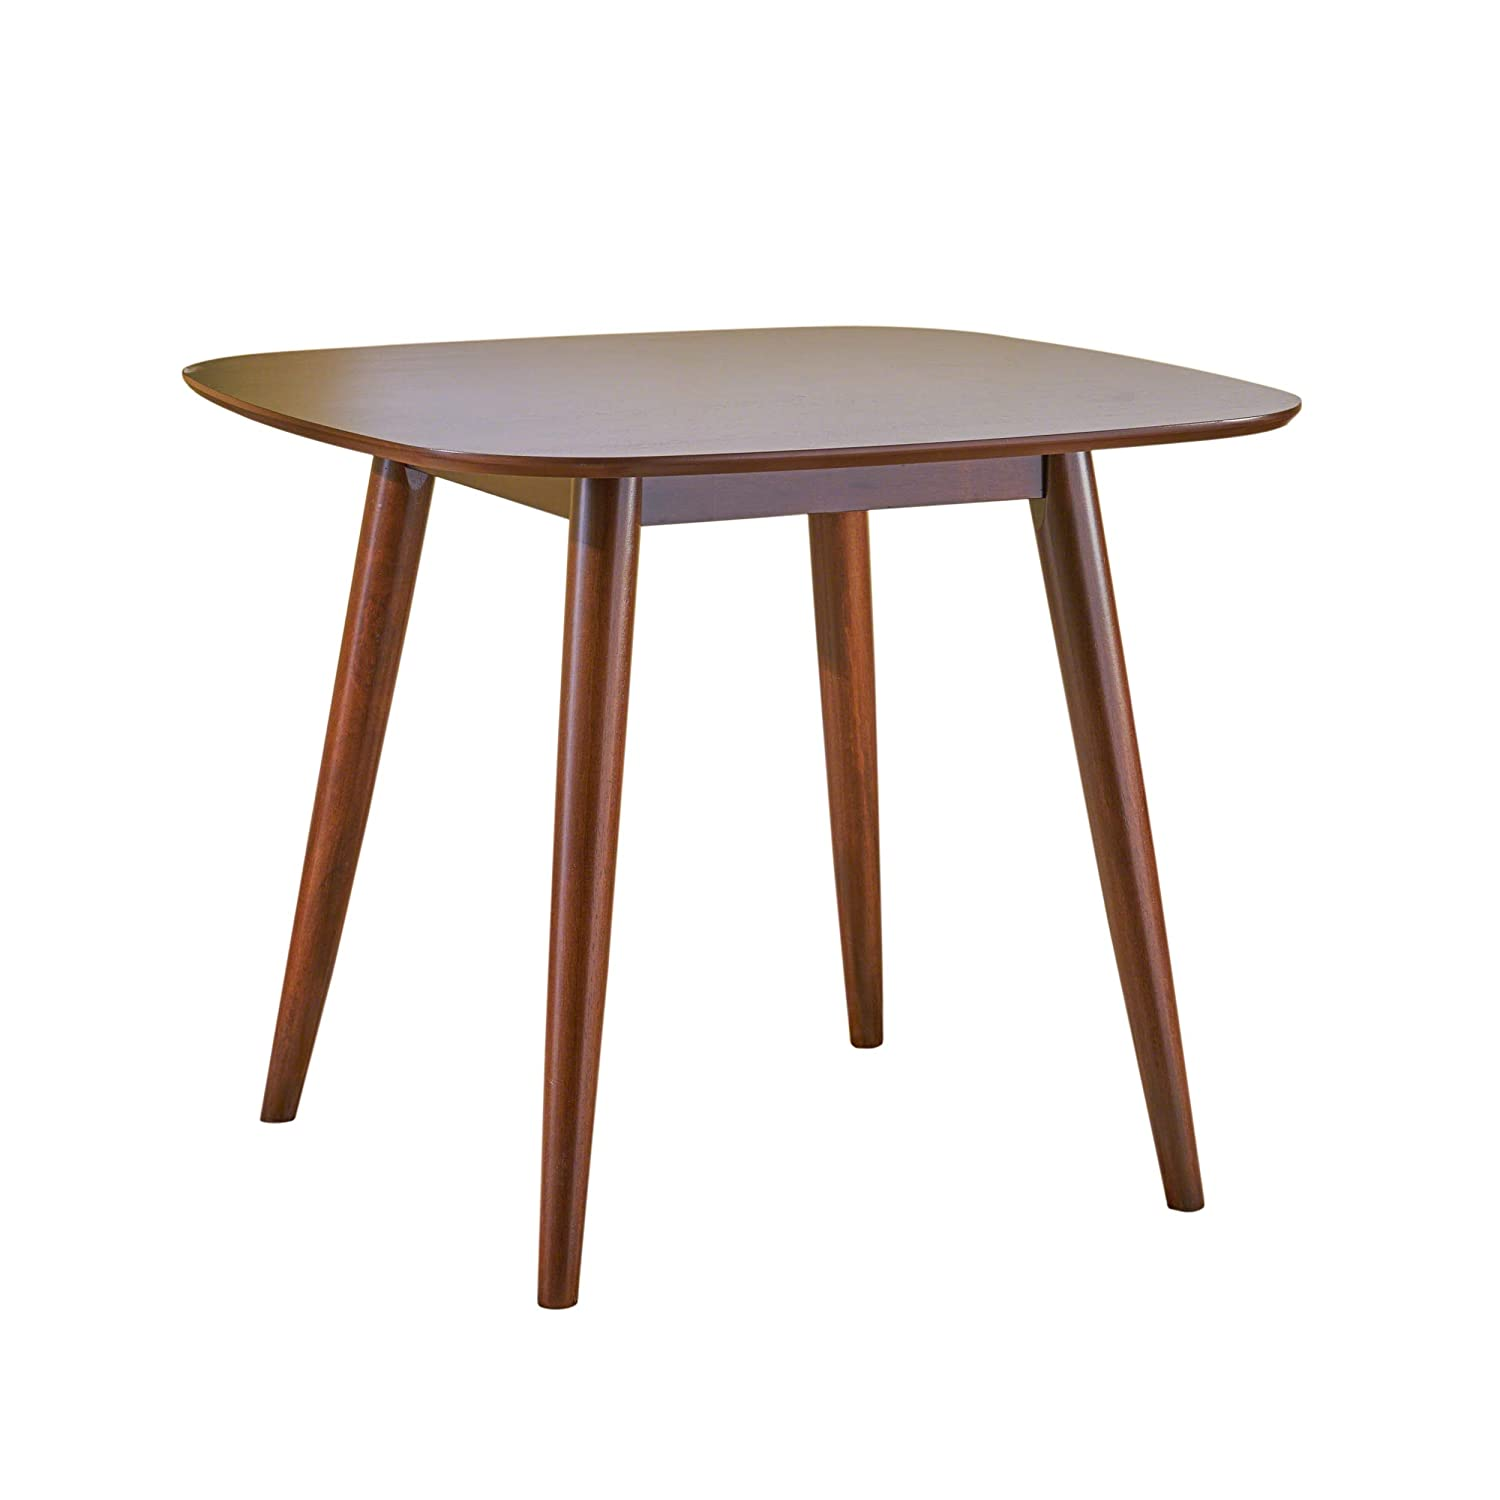 Christopher Knight Home 305368 Bass Mid Century Modern Square Faux Wood Dining Table, Walnut Finish